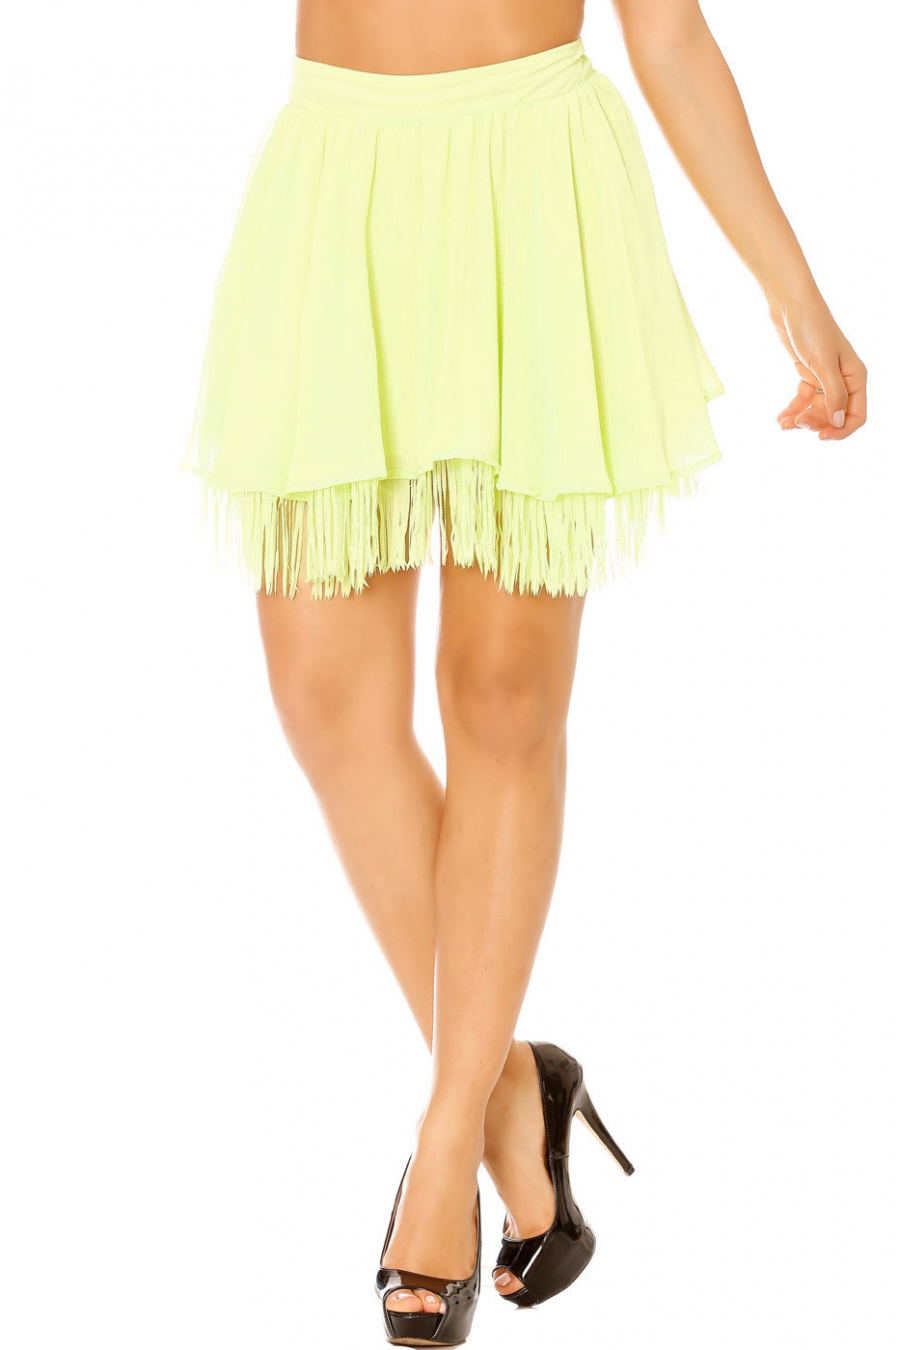 Green flared skirt with fringes. Woman 7792